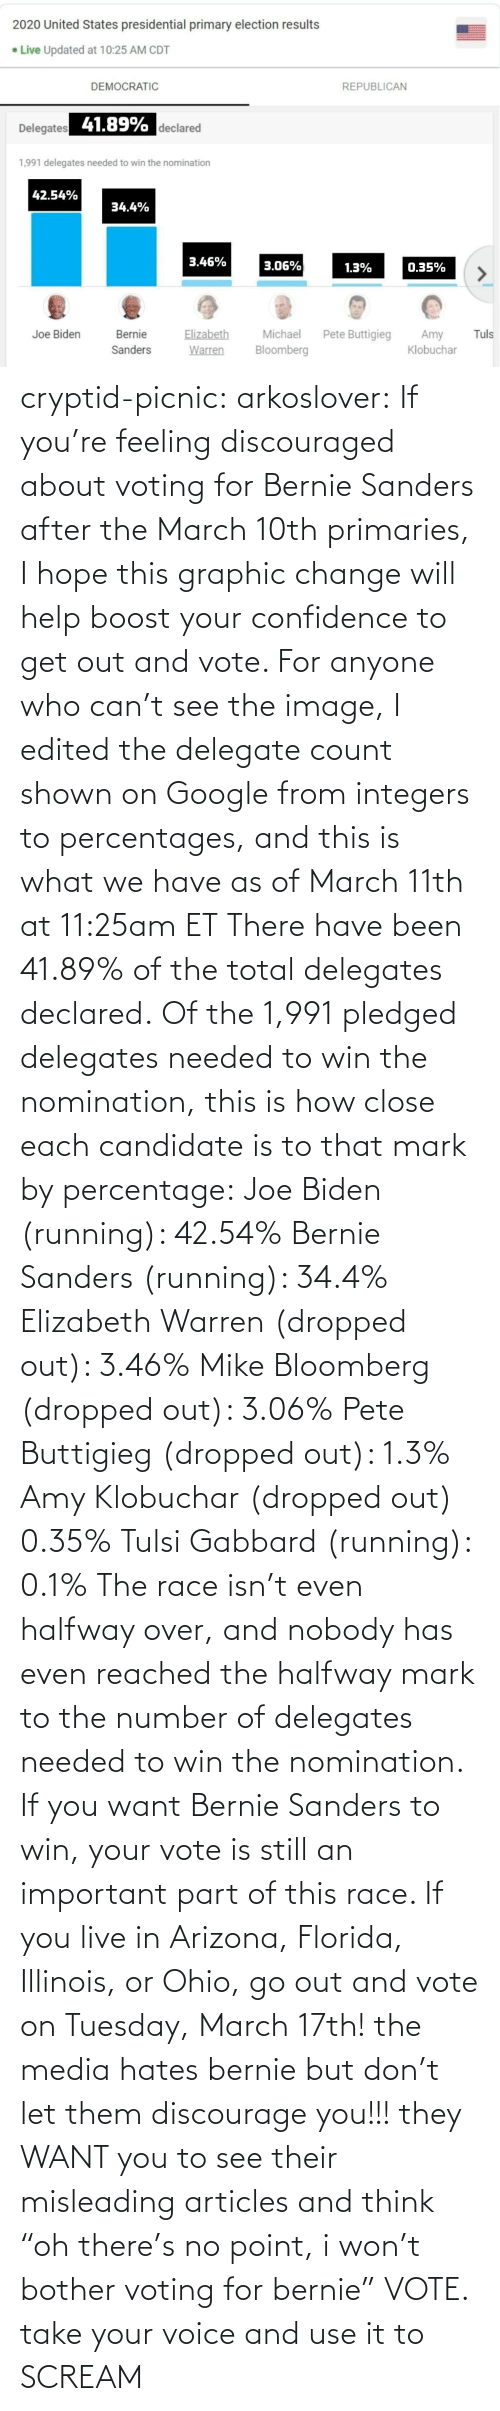 "joe: cryptid-picnic: arkoslover:   If you're feeling discouraged about voting for Bernie Sanders after the March 10th primaries, I hope this graphic change will help boost your confidence to get out and vote. For anyone who can't see the image, I edited the delegate count shown on Google from integers to percentages, and this is what we have as of March 11th at 11:25am ET There have been 41.89% of the total delegates declared. Of the 1,991 pledged delegates needed to win the nomination, this is how close each candidate is to that mark by percentage: Joe Biden (running): 42.54% Bernie Sanders (running): 34.4% Elizabeth Warren (dropped out): 3.46% Mike Bloomberg (dropped out): 3.06% Pete Buttigieg (dropped out): 1.3% Amy Klobuchar (dropped out) 0.35% Tulsi Gabbard (running): 0.1% The race isn't even halfway over, and nobody has even reached the halfway mark to the number of delegates needed to win the nomination. If you want Bernie Sanders to win, your vote is still an important part of this race. If you live in Arizona, Florida, Illinois, or Ohio, go out and vote on Tuesday, March 17th!    the media hates bernie but don't let them discourage you!!! they WANT you to see their misleading articles and think ""oh there's no point, i won't bother voting for bernie"" VOTE. take your voice and use it to SCREAM"